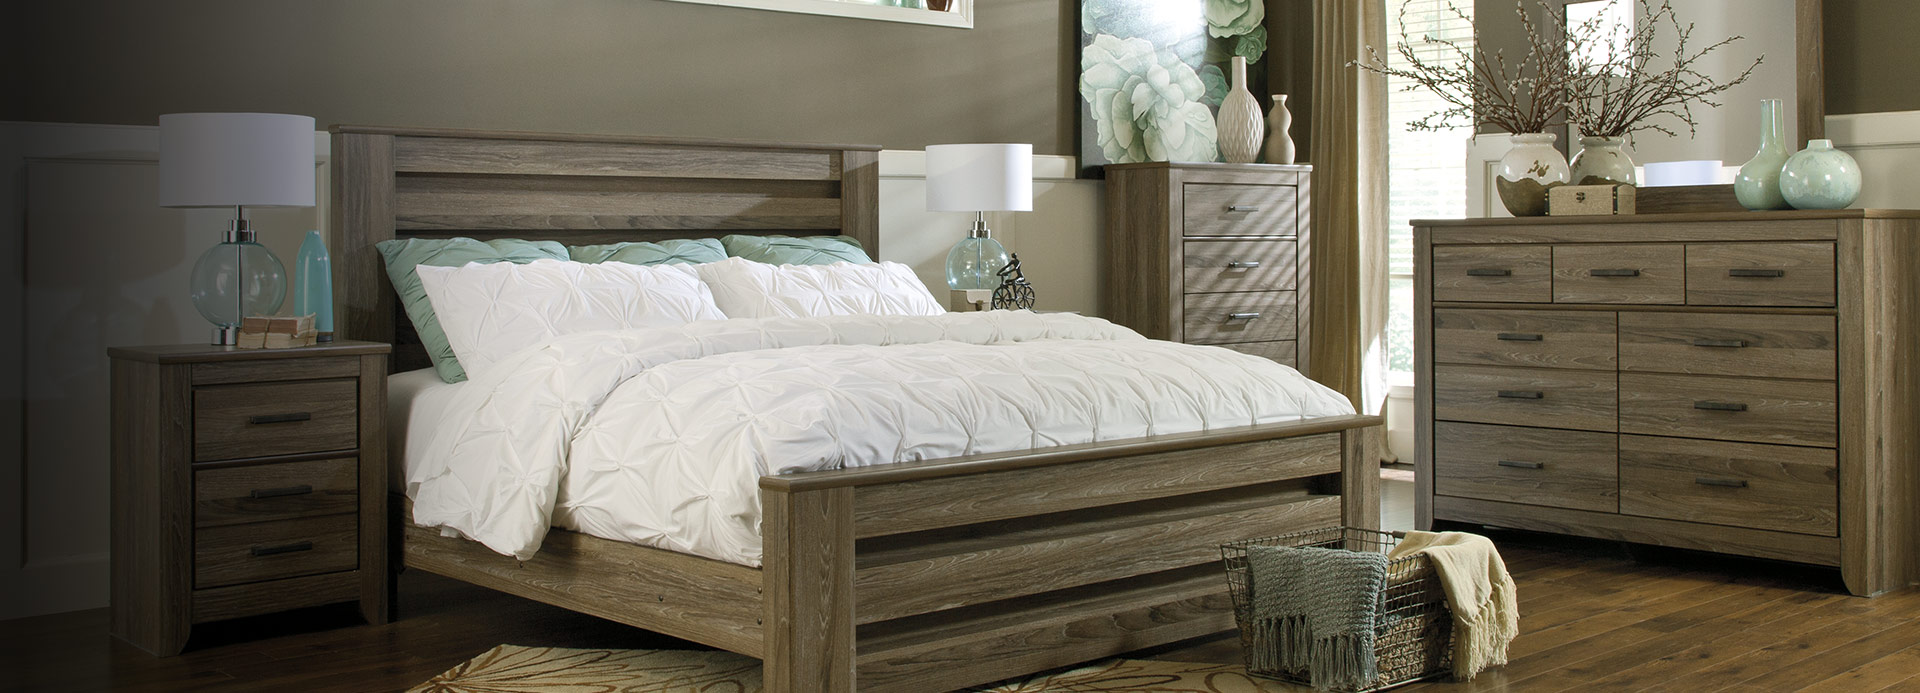 Ashley Home Furnishings Bedroom Furniture